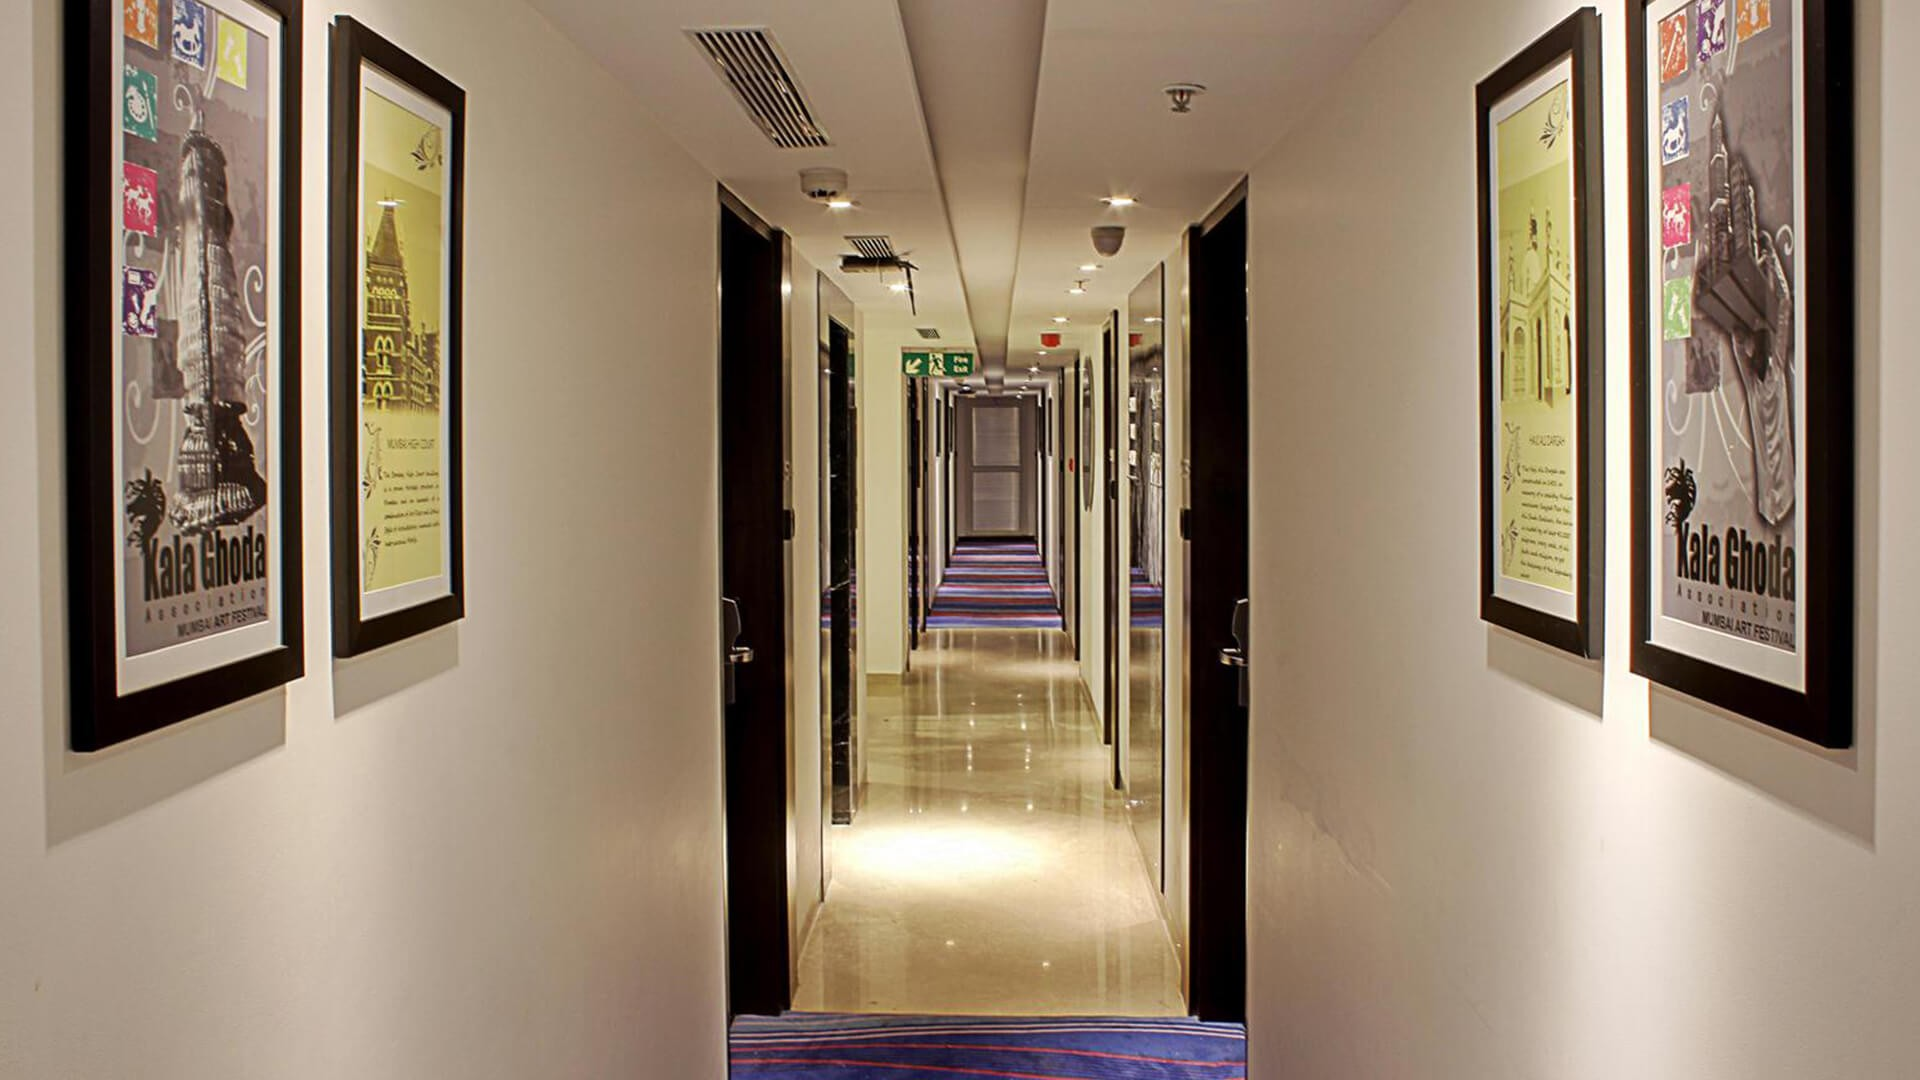 Business hotel in Mumbai central, 4 star hotel in Mumbai, luxury business hotel in Mumbai central, hotels near phoenix mall lower Parel, hotel near Mumbai central railway station